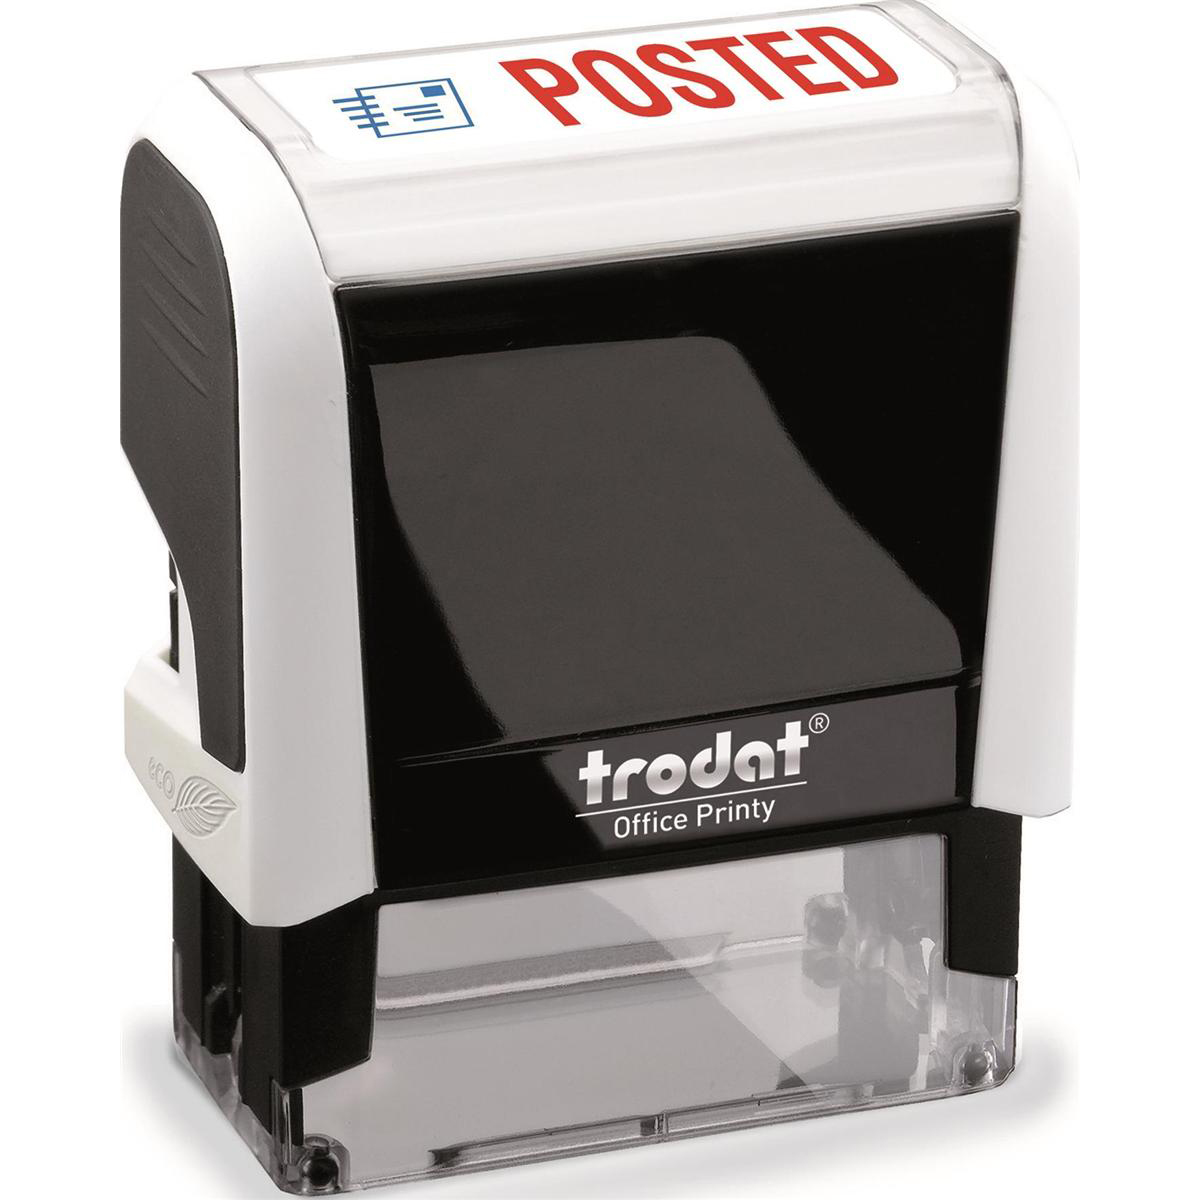 Trodat Office Printy 4.0 POSTED 77303